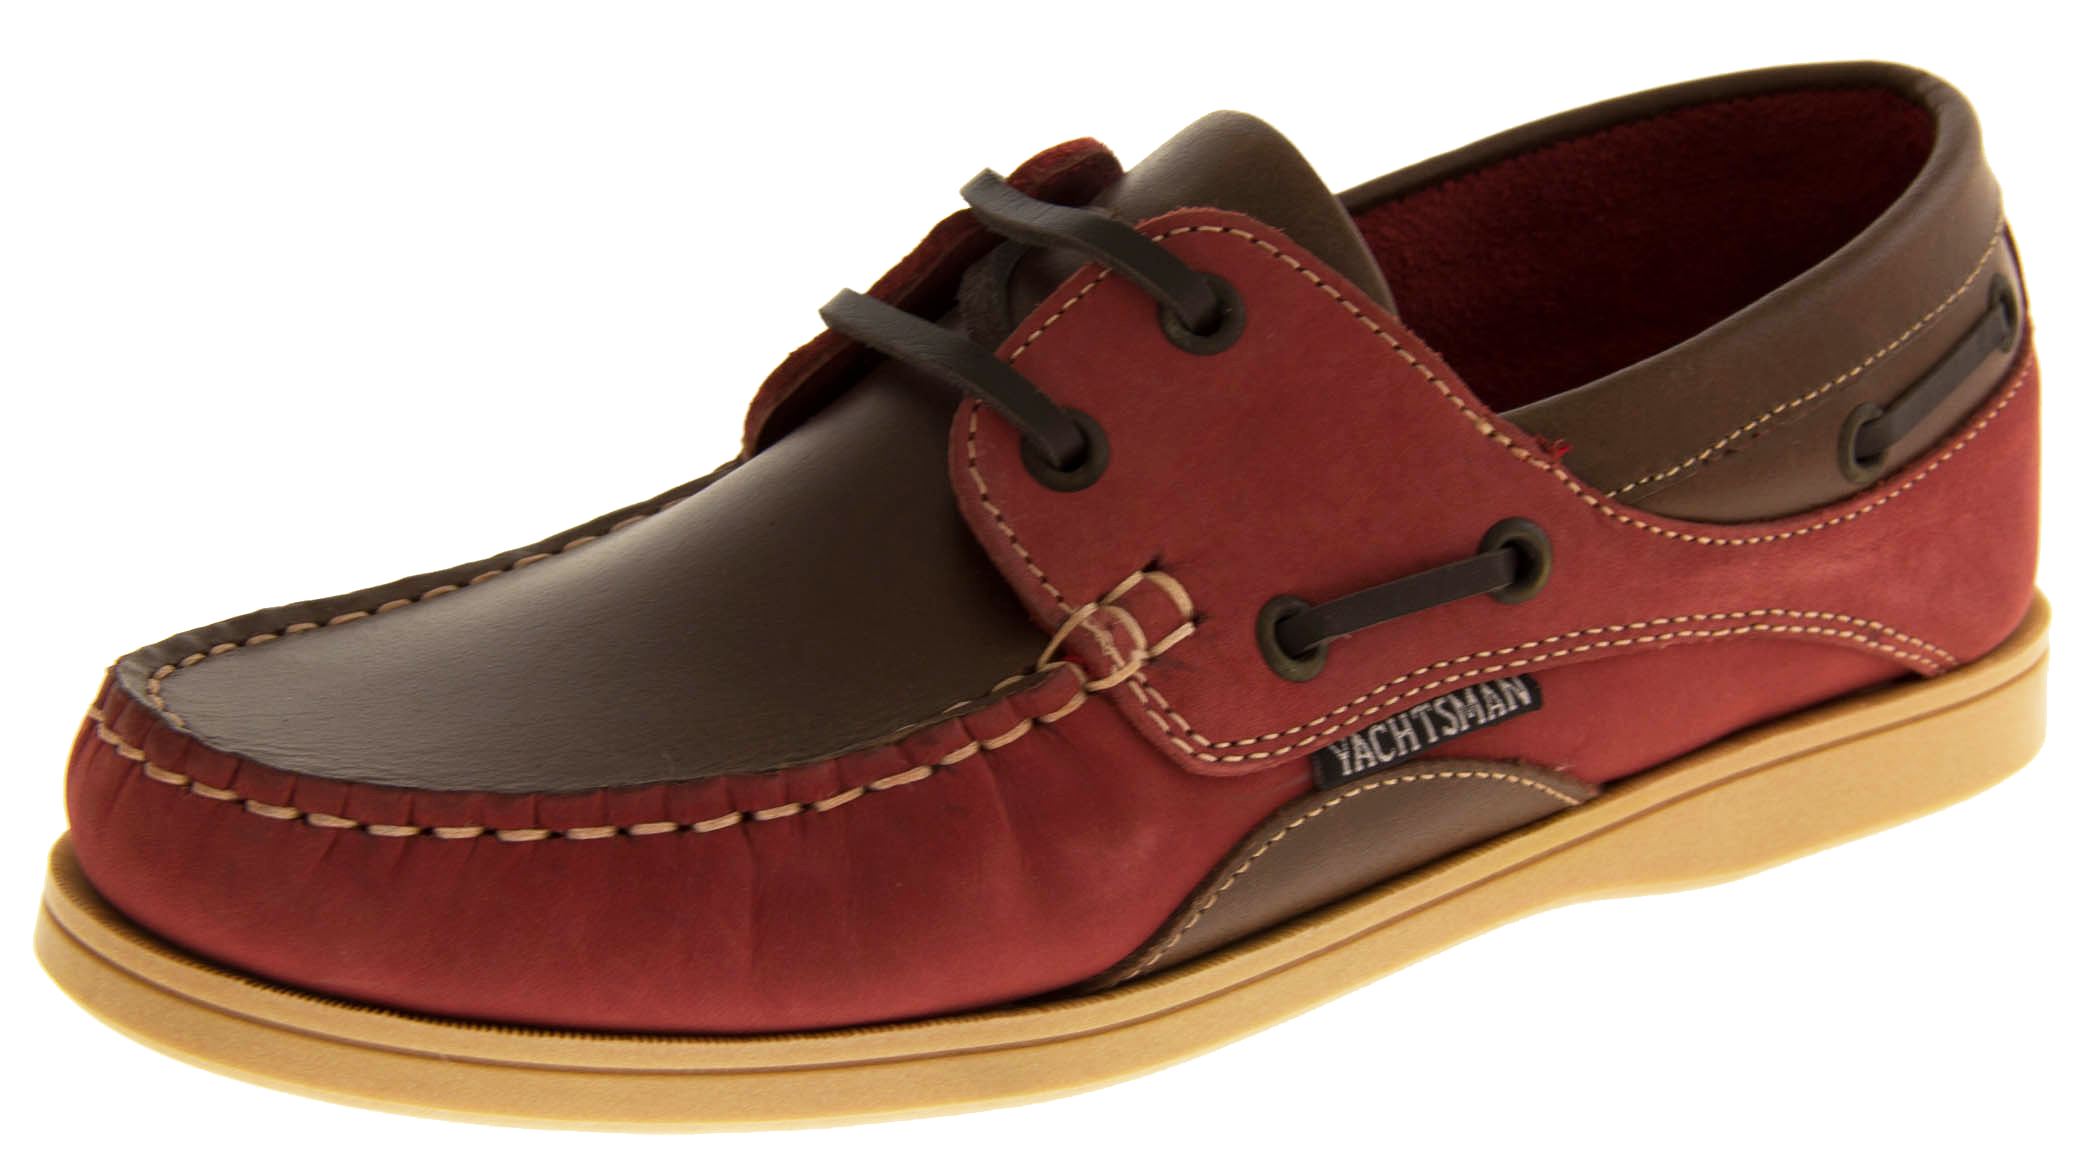 Womens Yachtsman Leather Sailing Deck Shoes Womens Mens